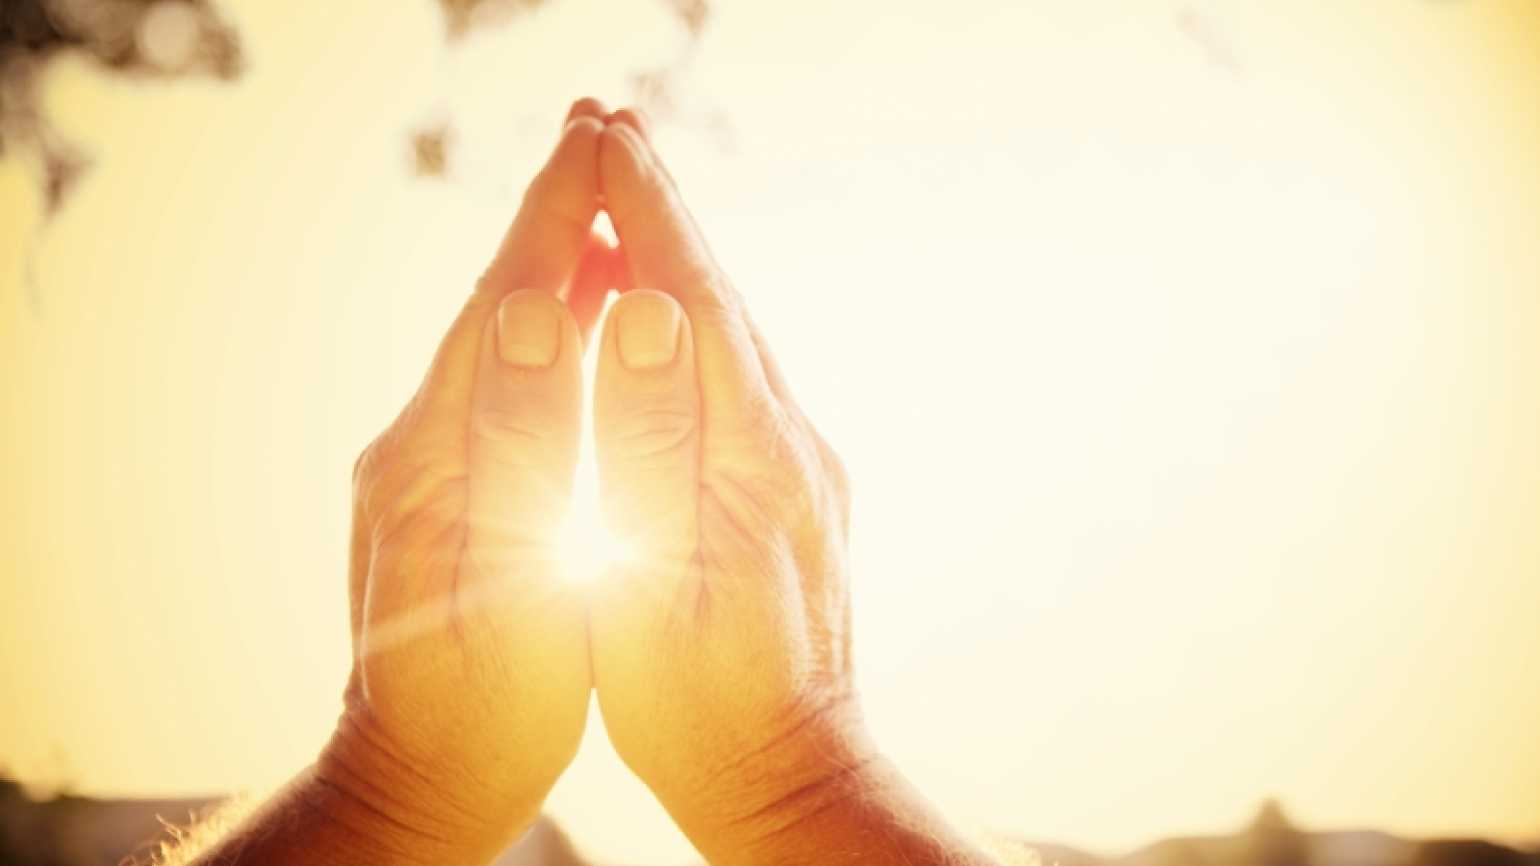 praying hands in the sunlight